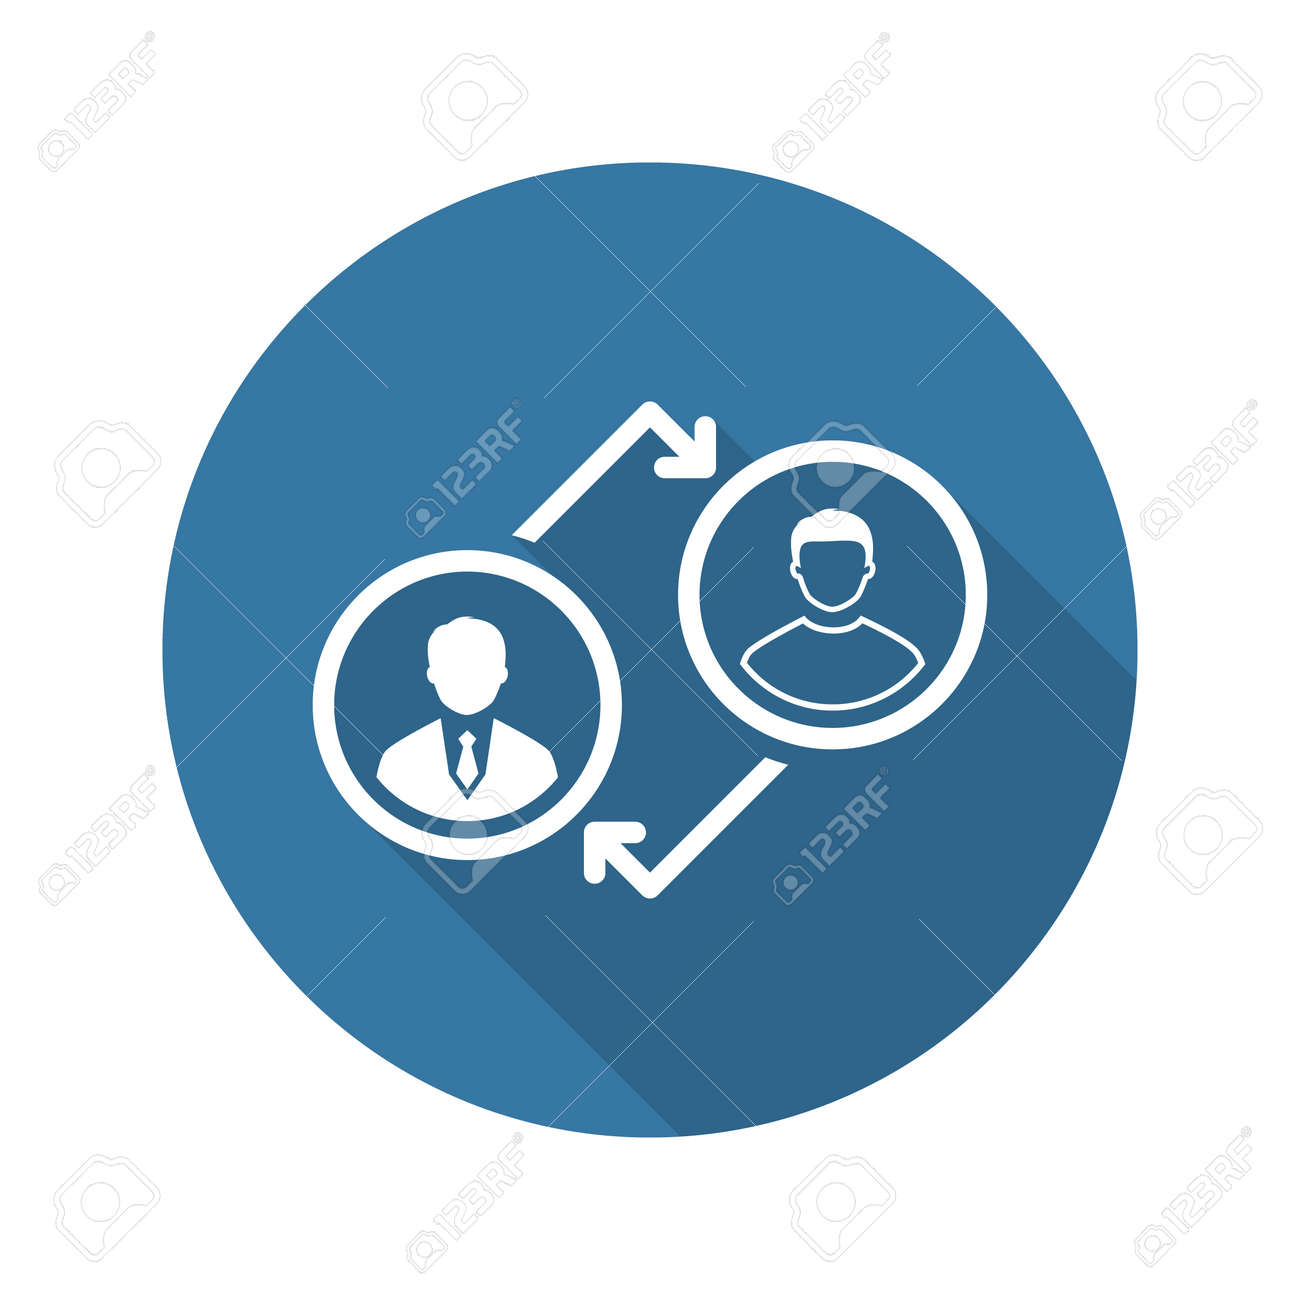 coaching icon business concept flat design isolated illustration